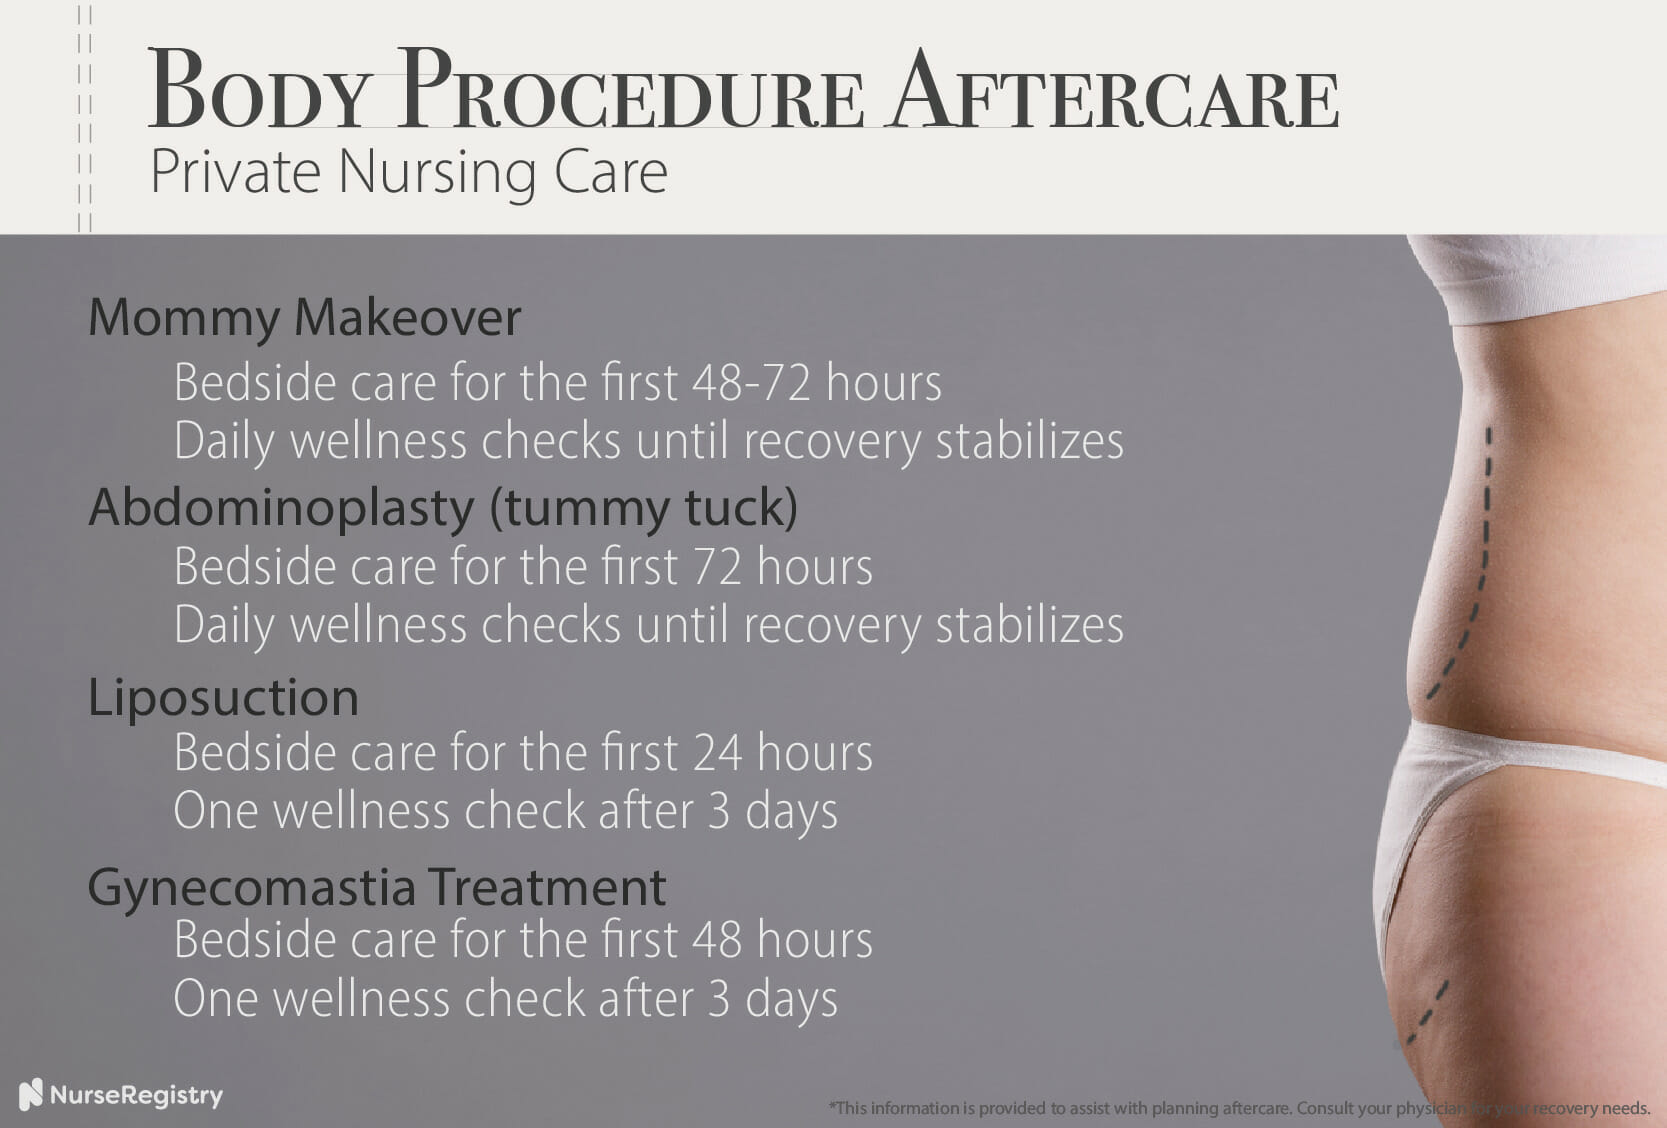 plastic surgery private nurse aftercare recommendations for body procedures infographic